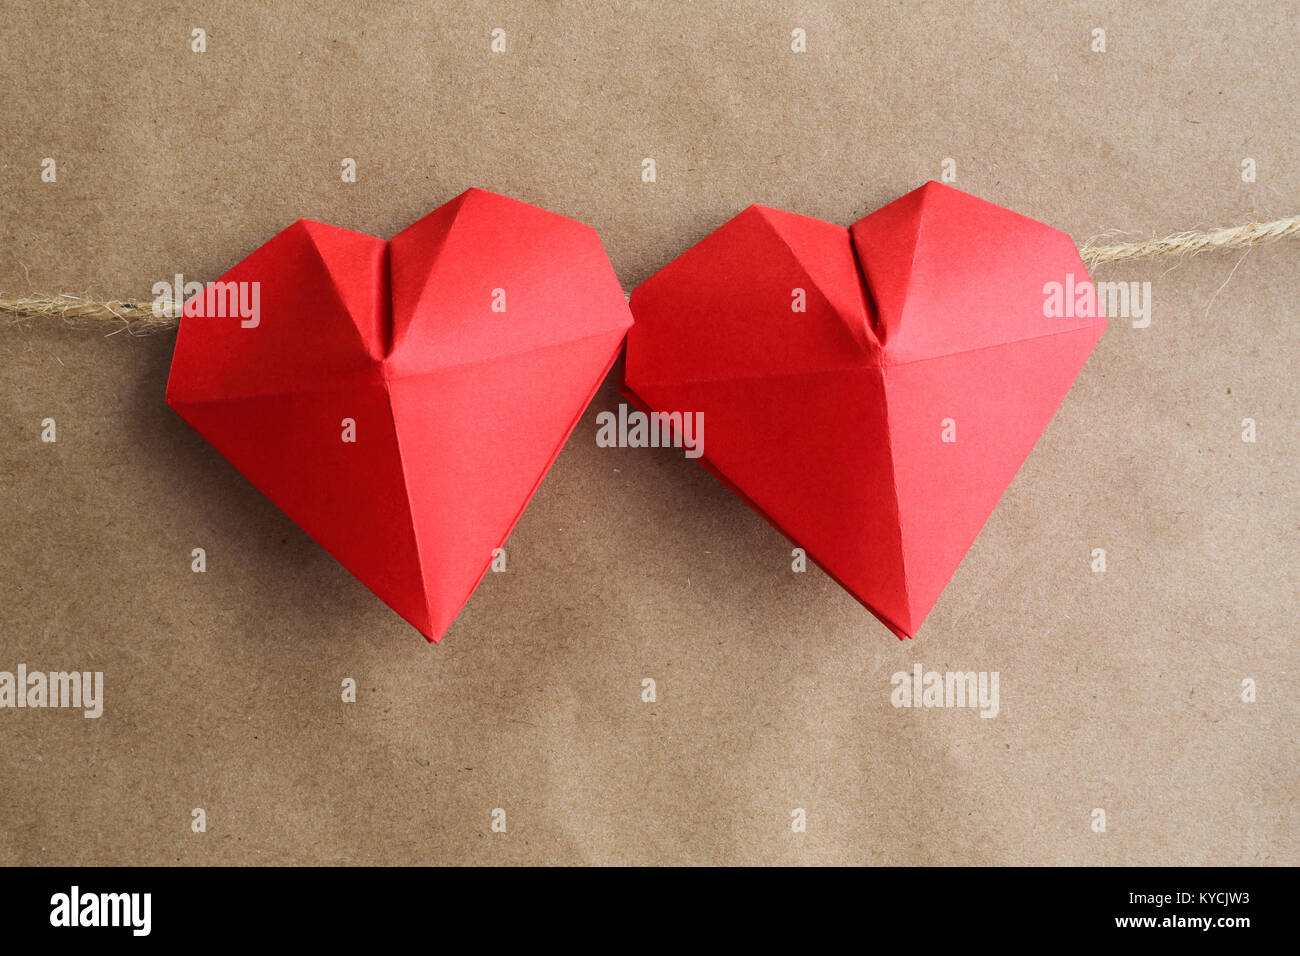 Red origami hearts on rope over paper background, Valentines